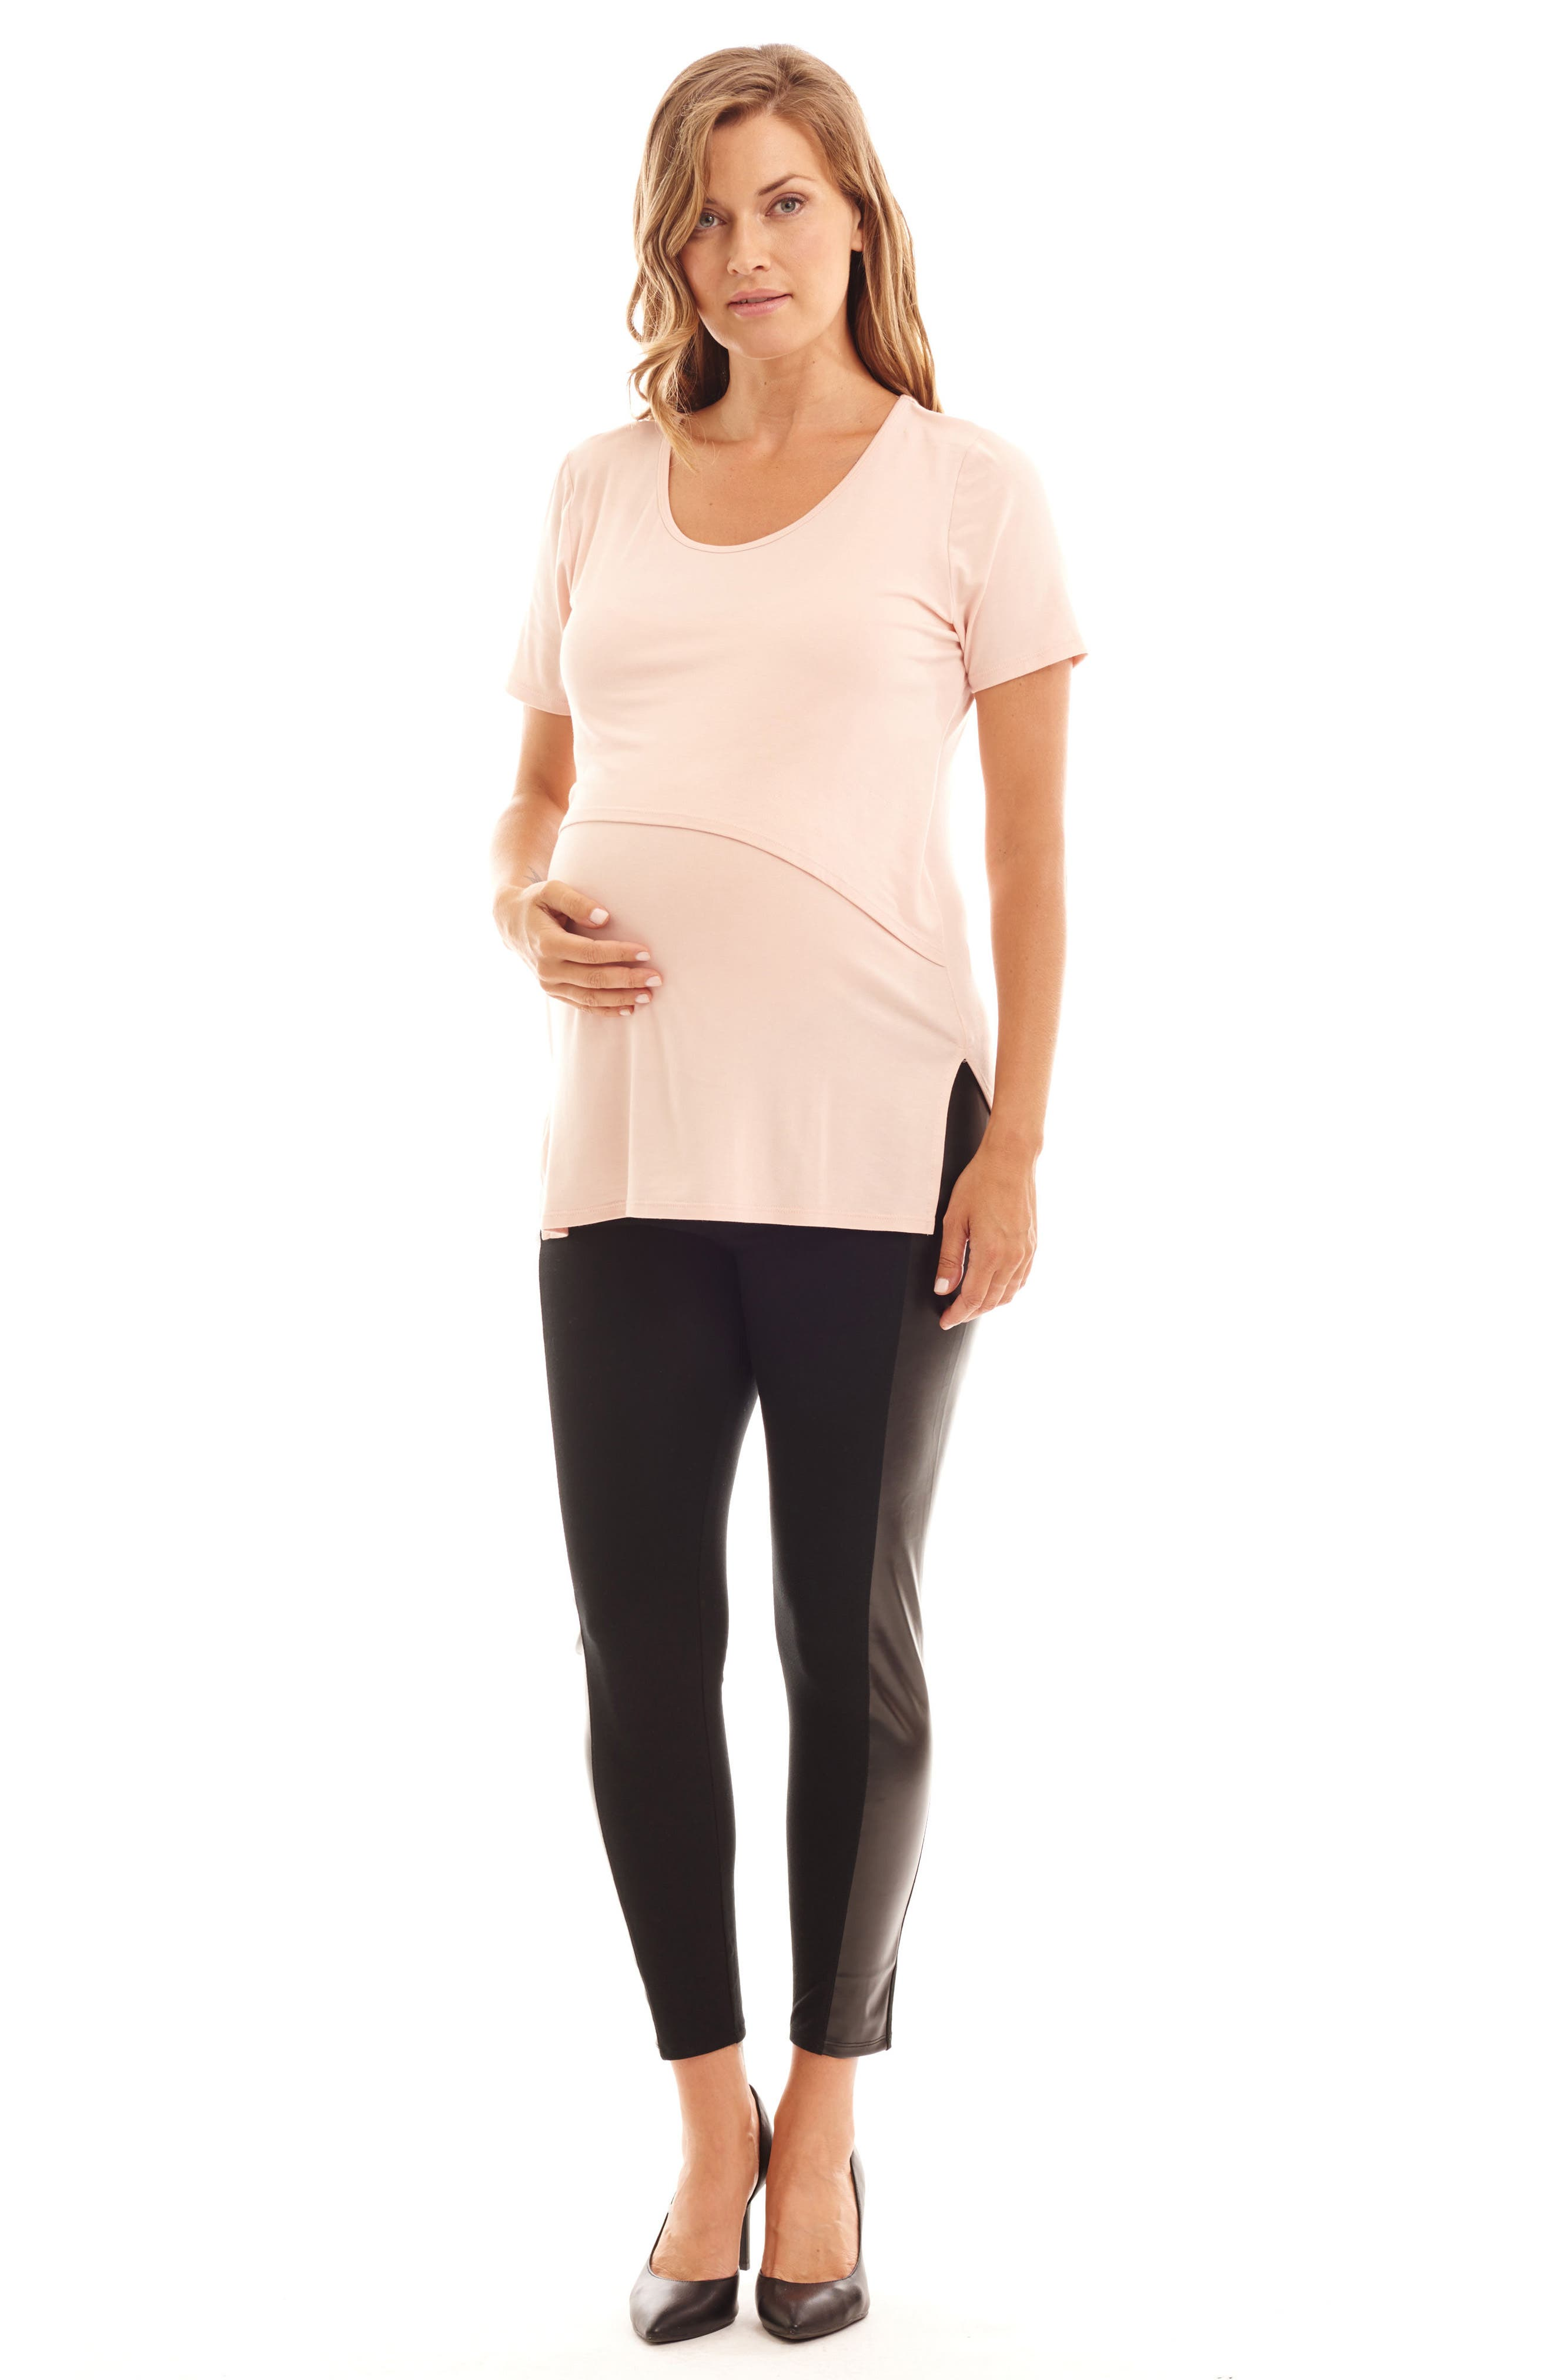 Ella Faux Leather & Knit Maternity Leggings,                             Alternate thumbnail 4, color,                             001